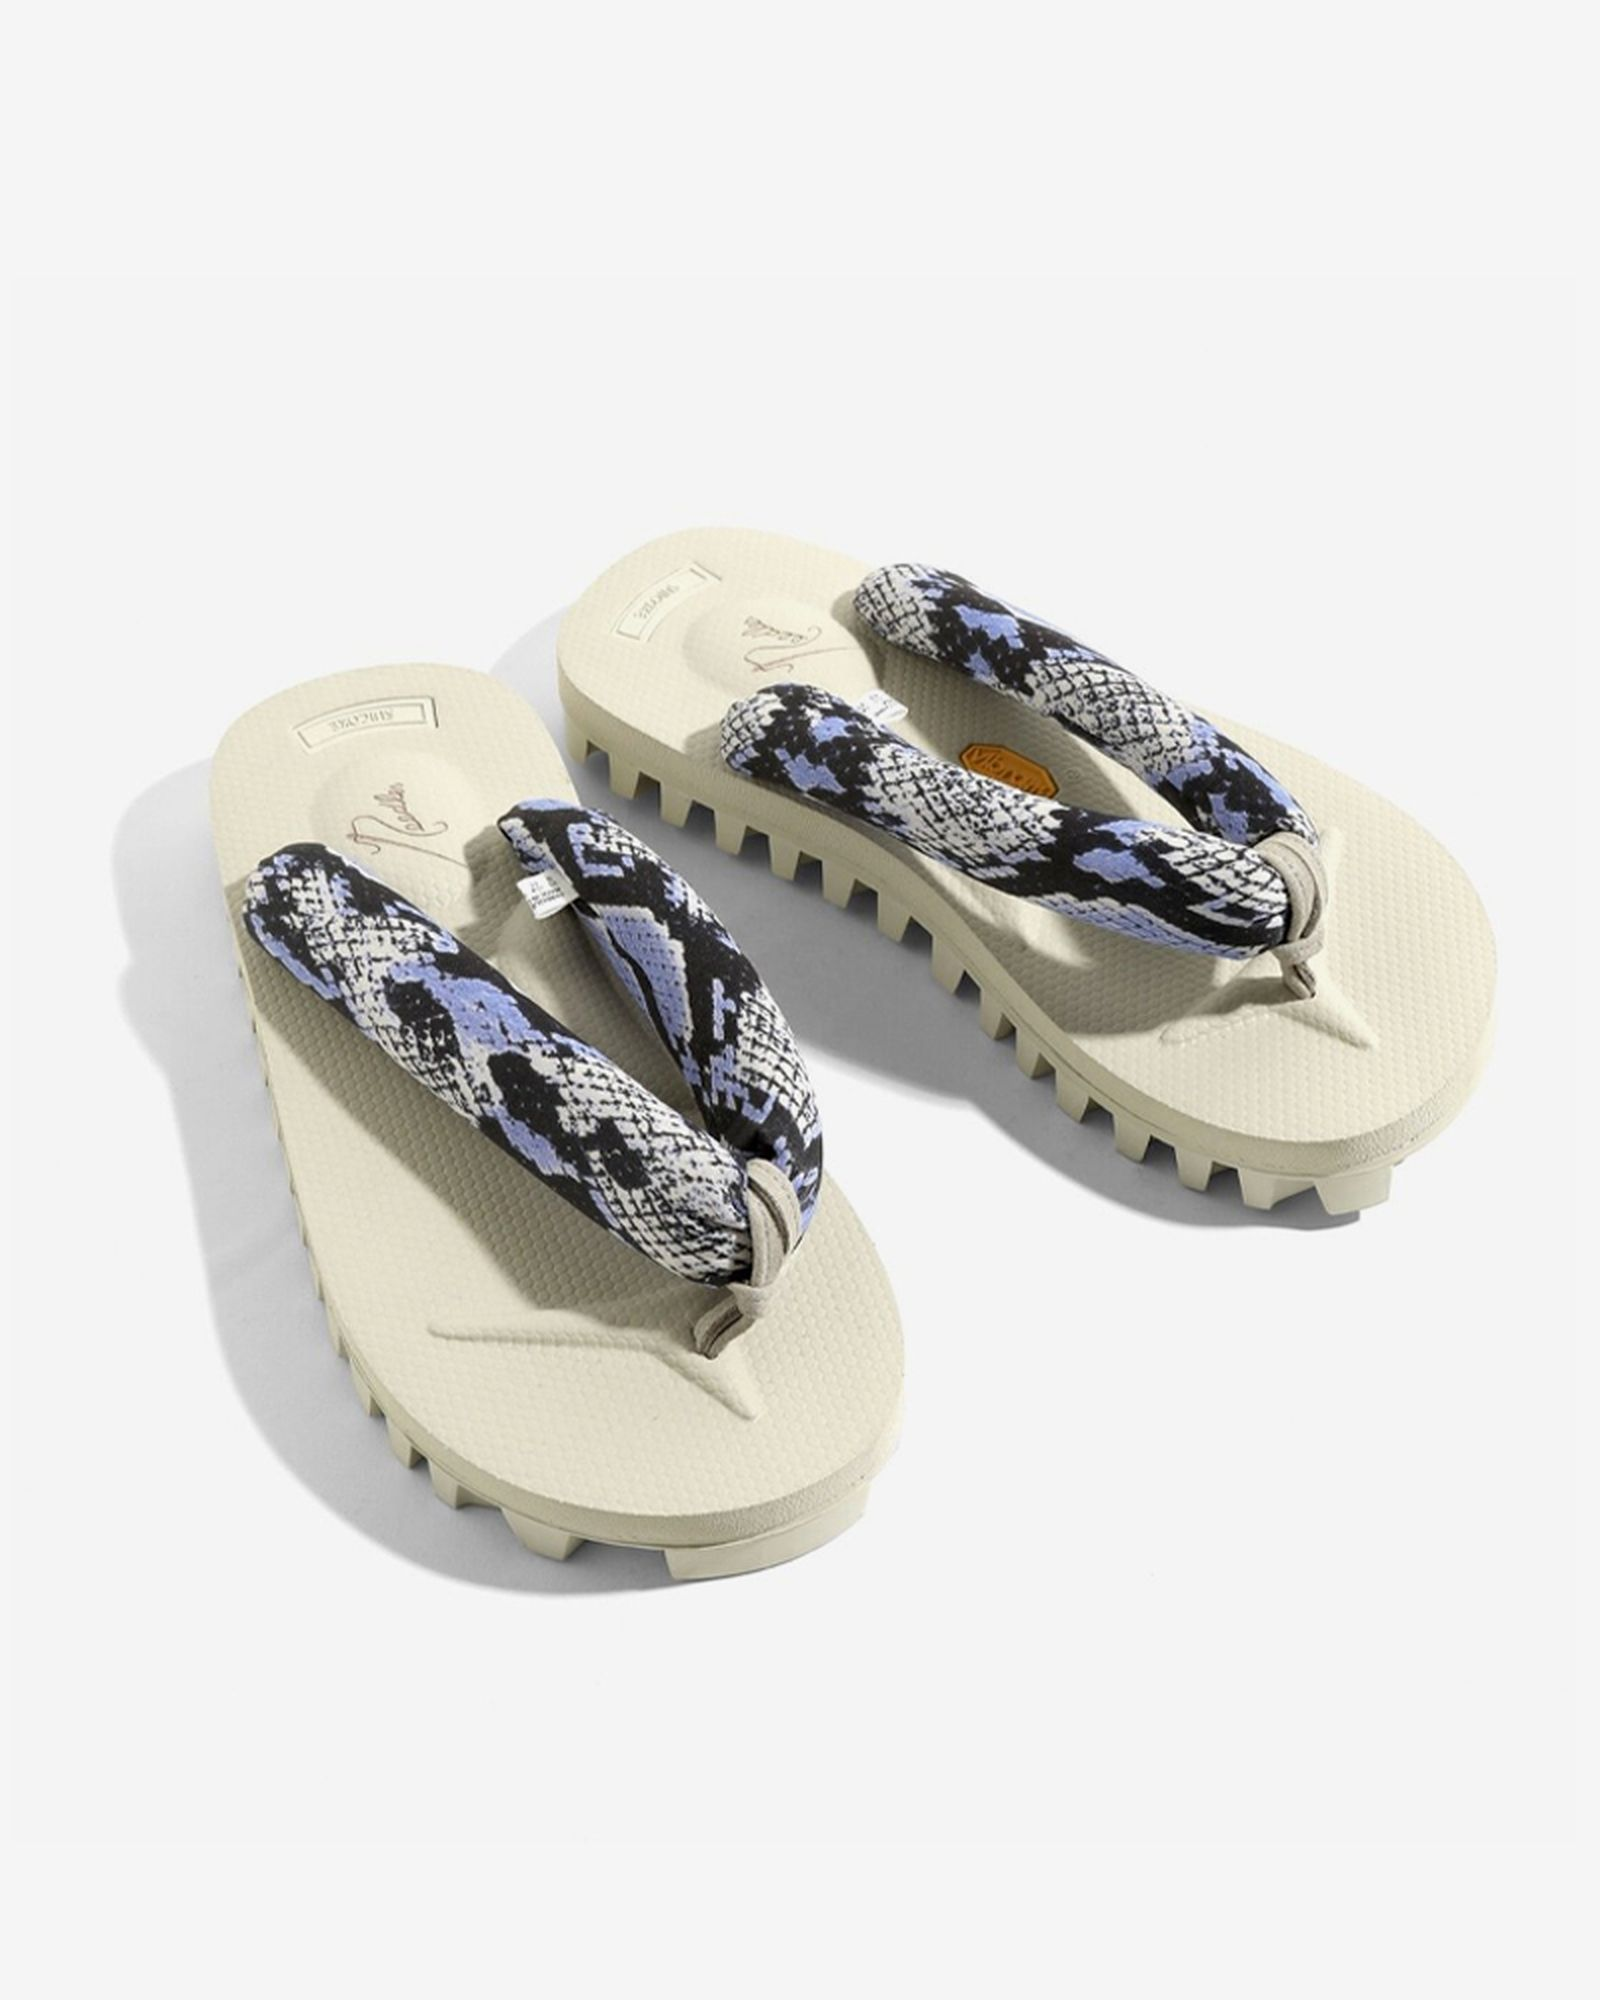 dad-sandals-roundtable-shopping-guide-10